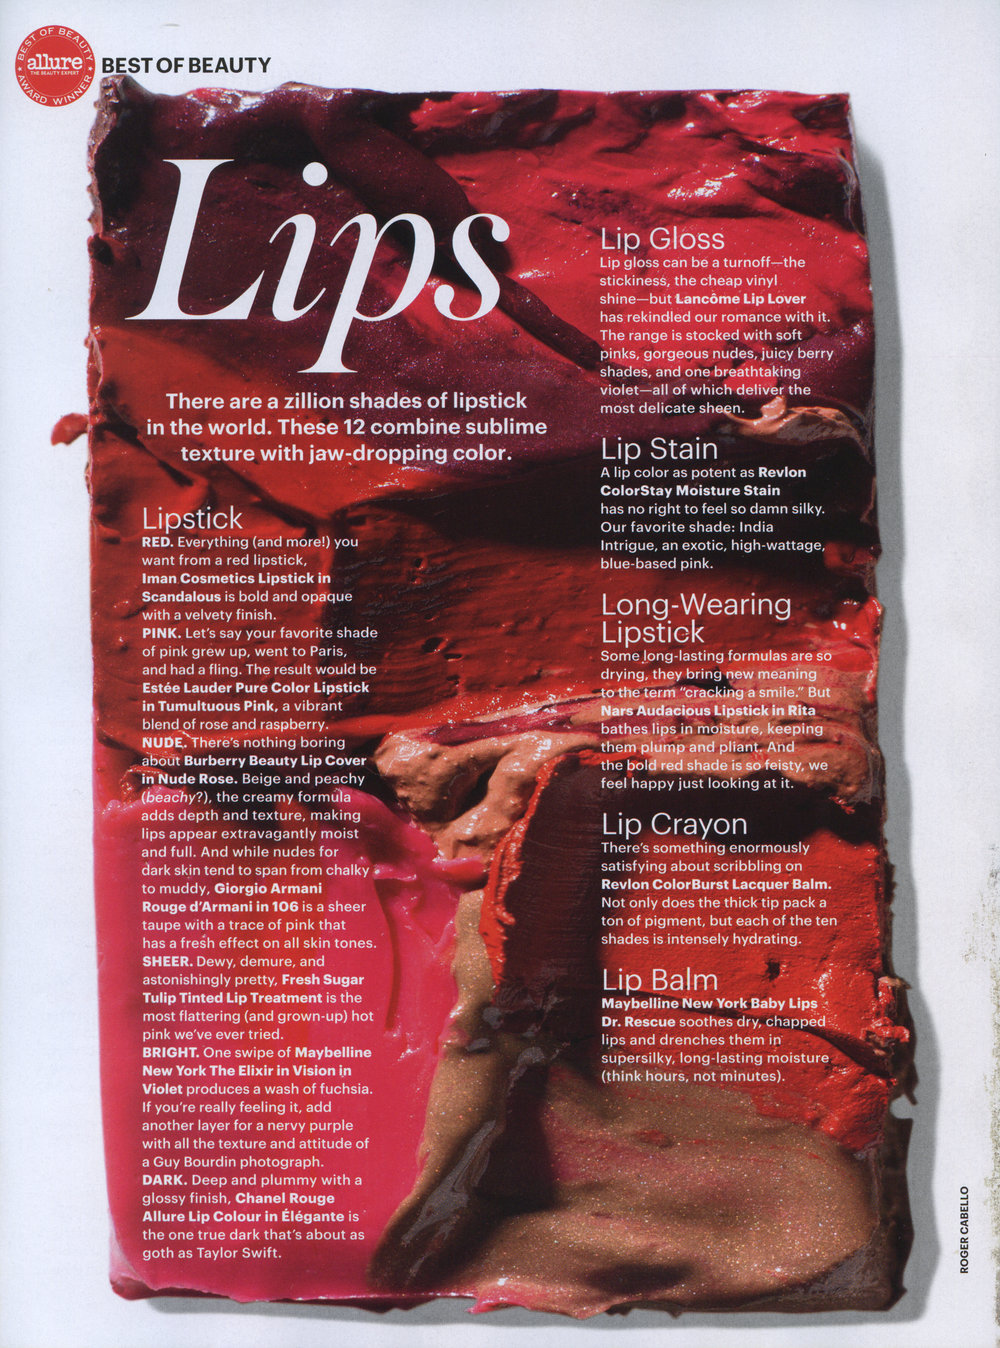 Allure_2014_10_Oct-BOB-Lips-PG246.jpg